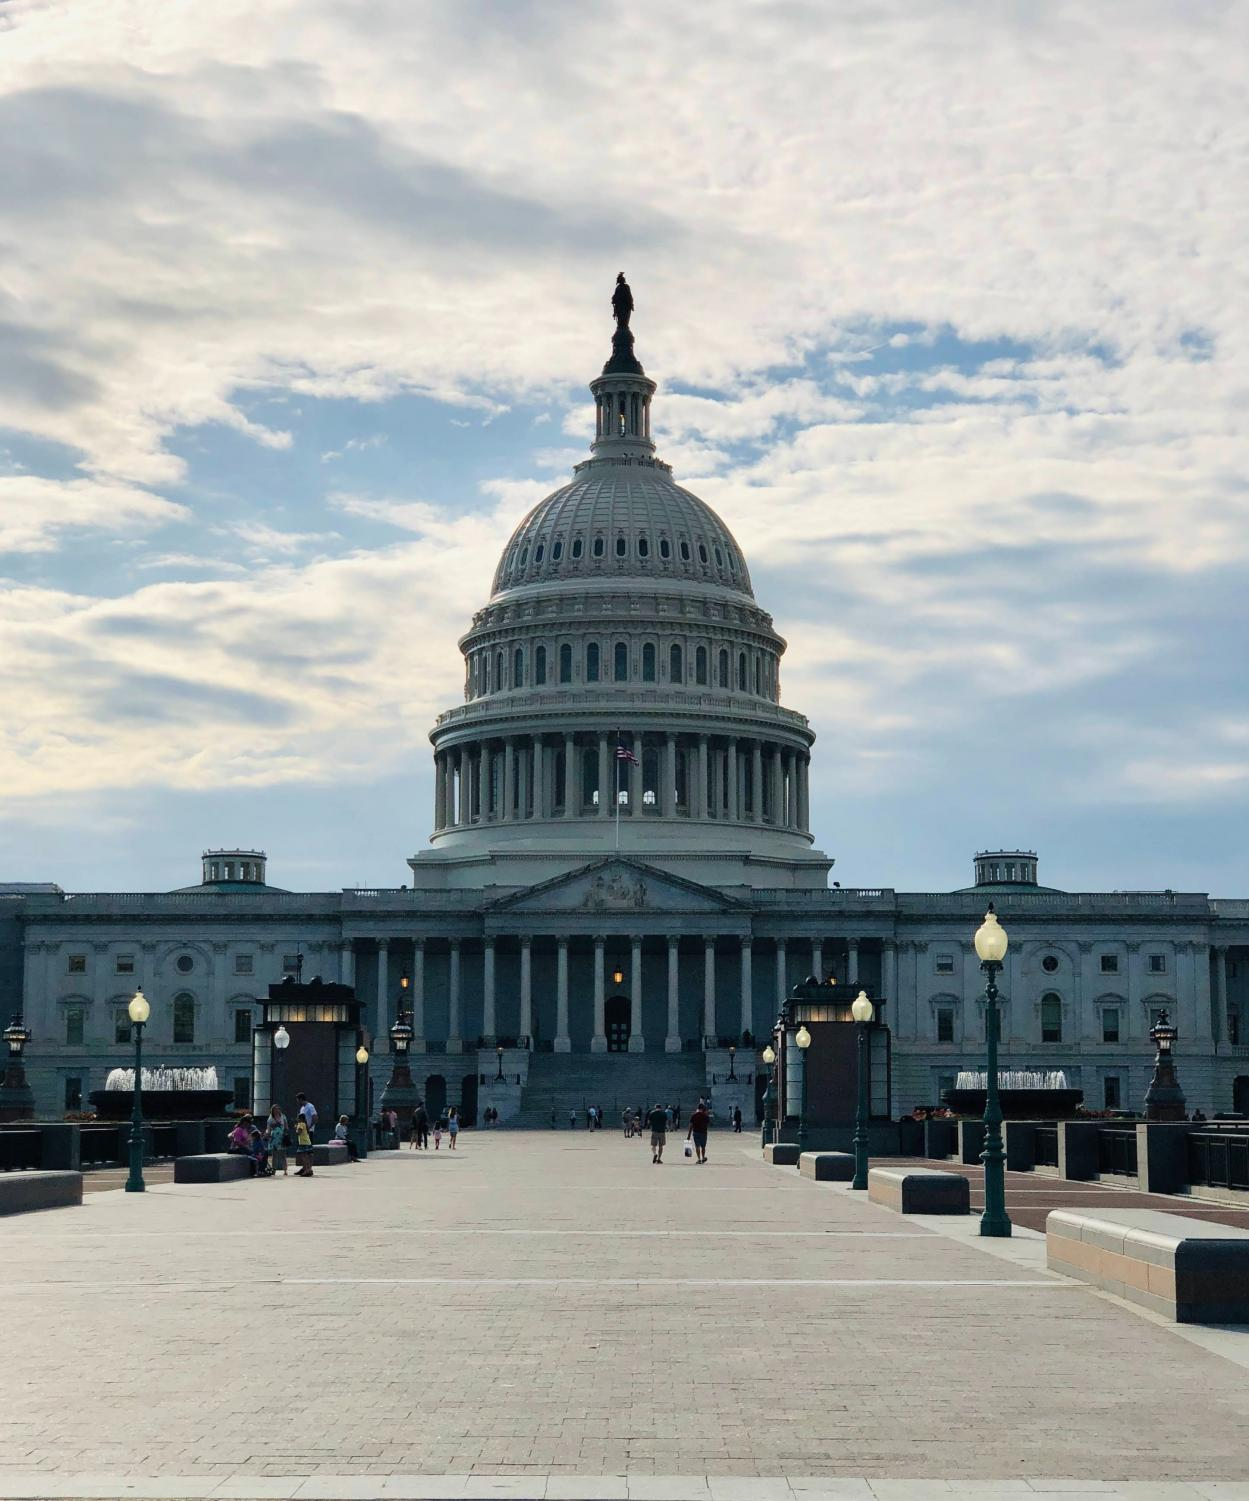 The US Capitol Building sits peacefully on Capitol Hill. In an attempt to disrupt democracy, rioters stormed the building on Jan. 6, 2021.